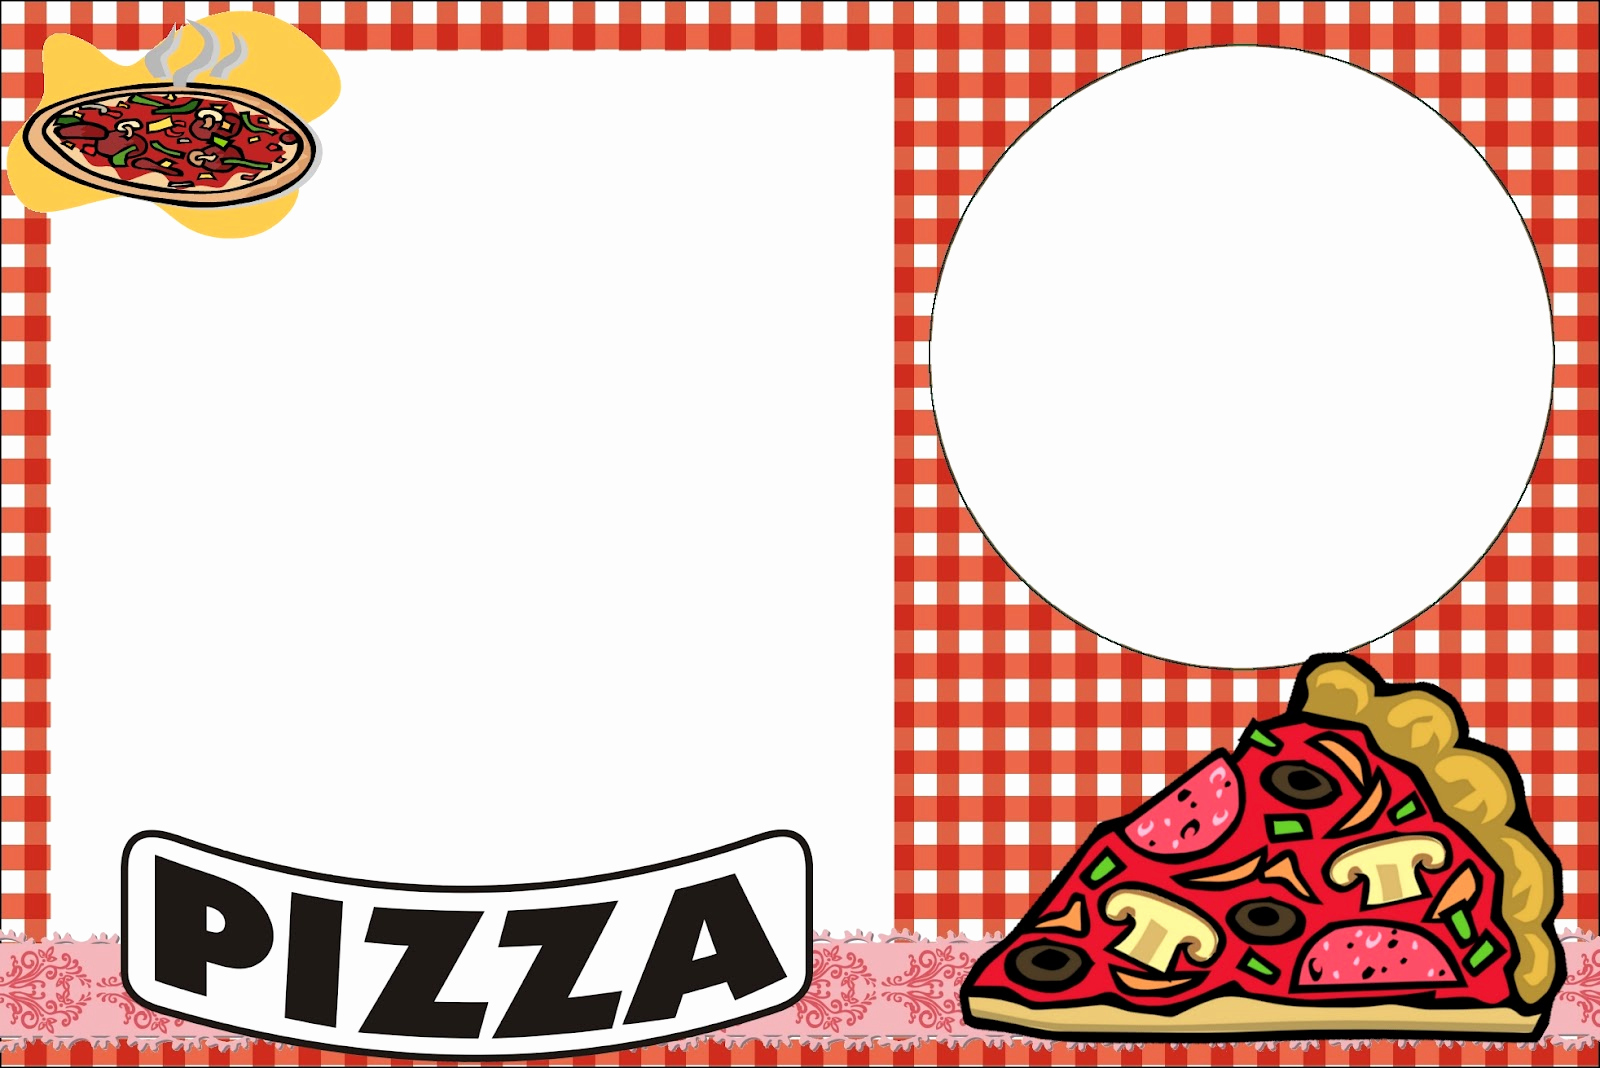 Pizza Party Invitation Templates Best Of Pizza Party Free Printable Invitations Oh My Fiesta